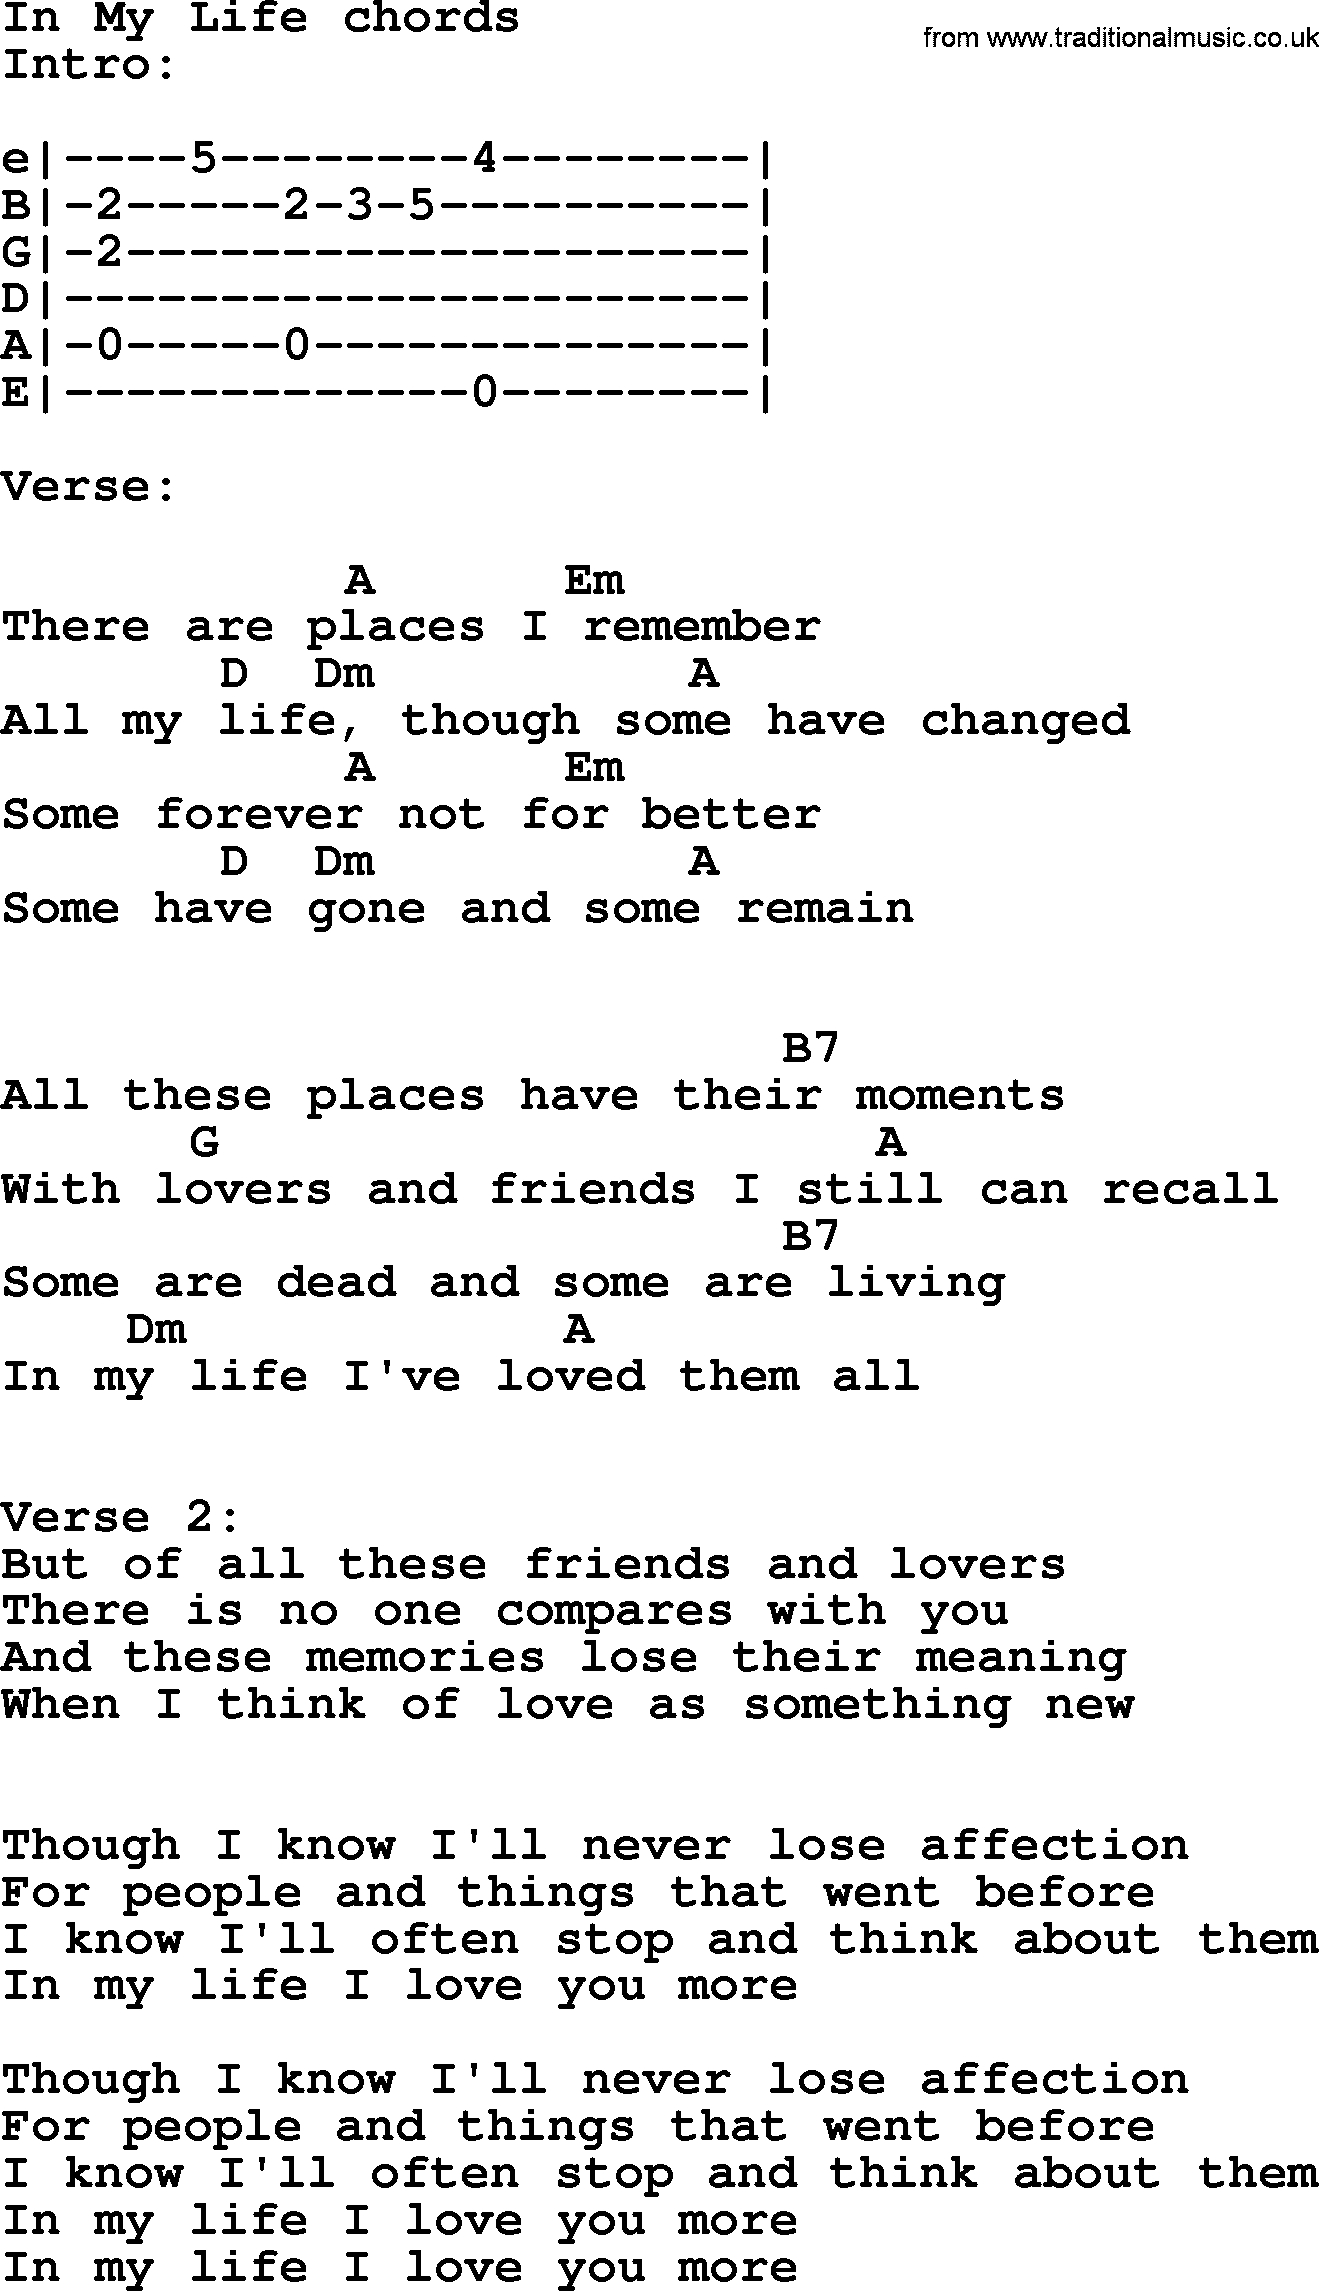 In My Life Chords Johnny Cash Song In My Life Chords Lyrics And Chords